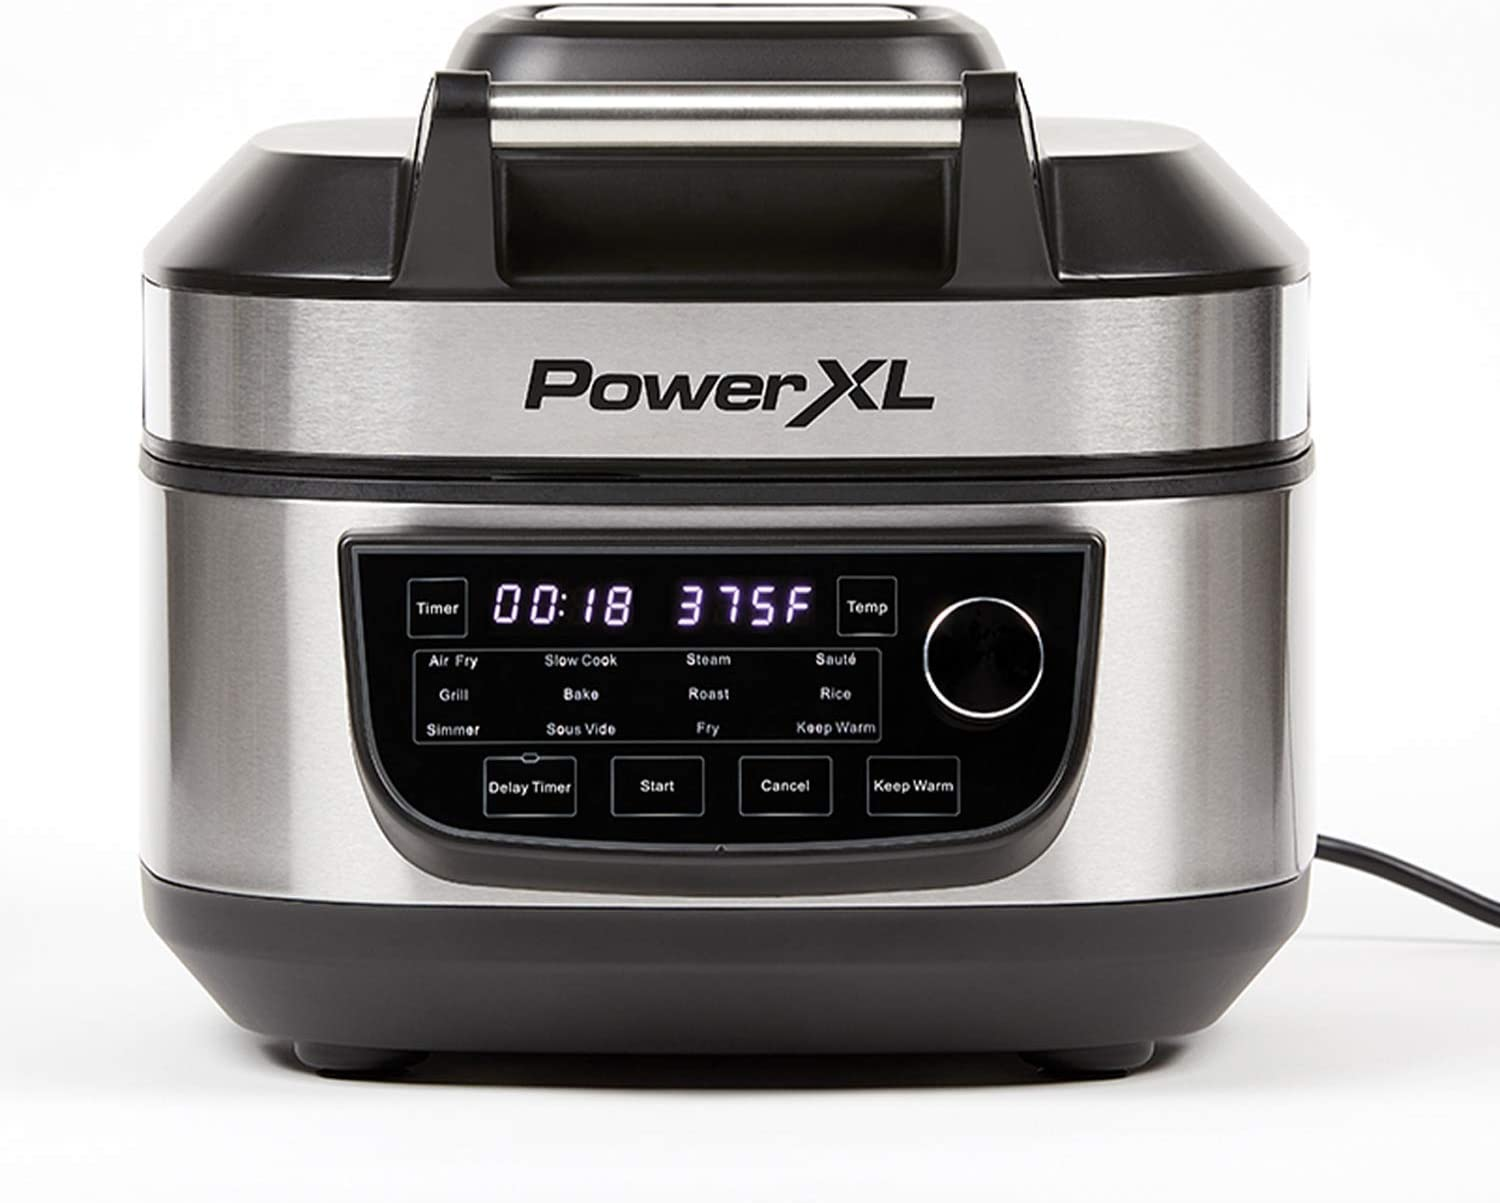 PowerXL Grill Air Fryer Combo 12-in-1 Indoor Grill, Air Fryer, Slow Cooker, Roast, Bake, 1550-Watts, Stainless Steel Finish (Renewed)